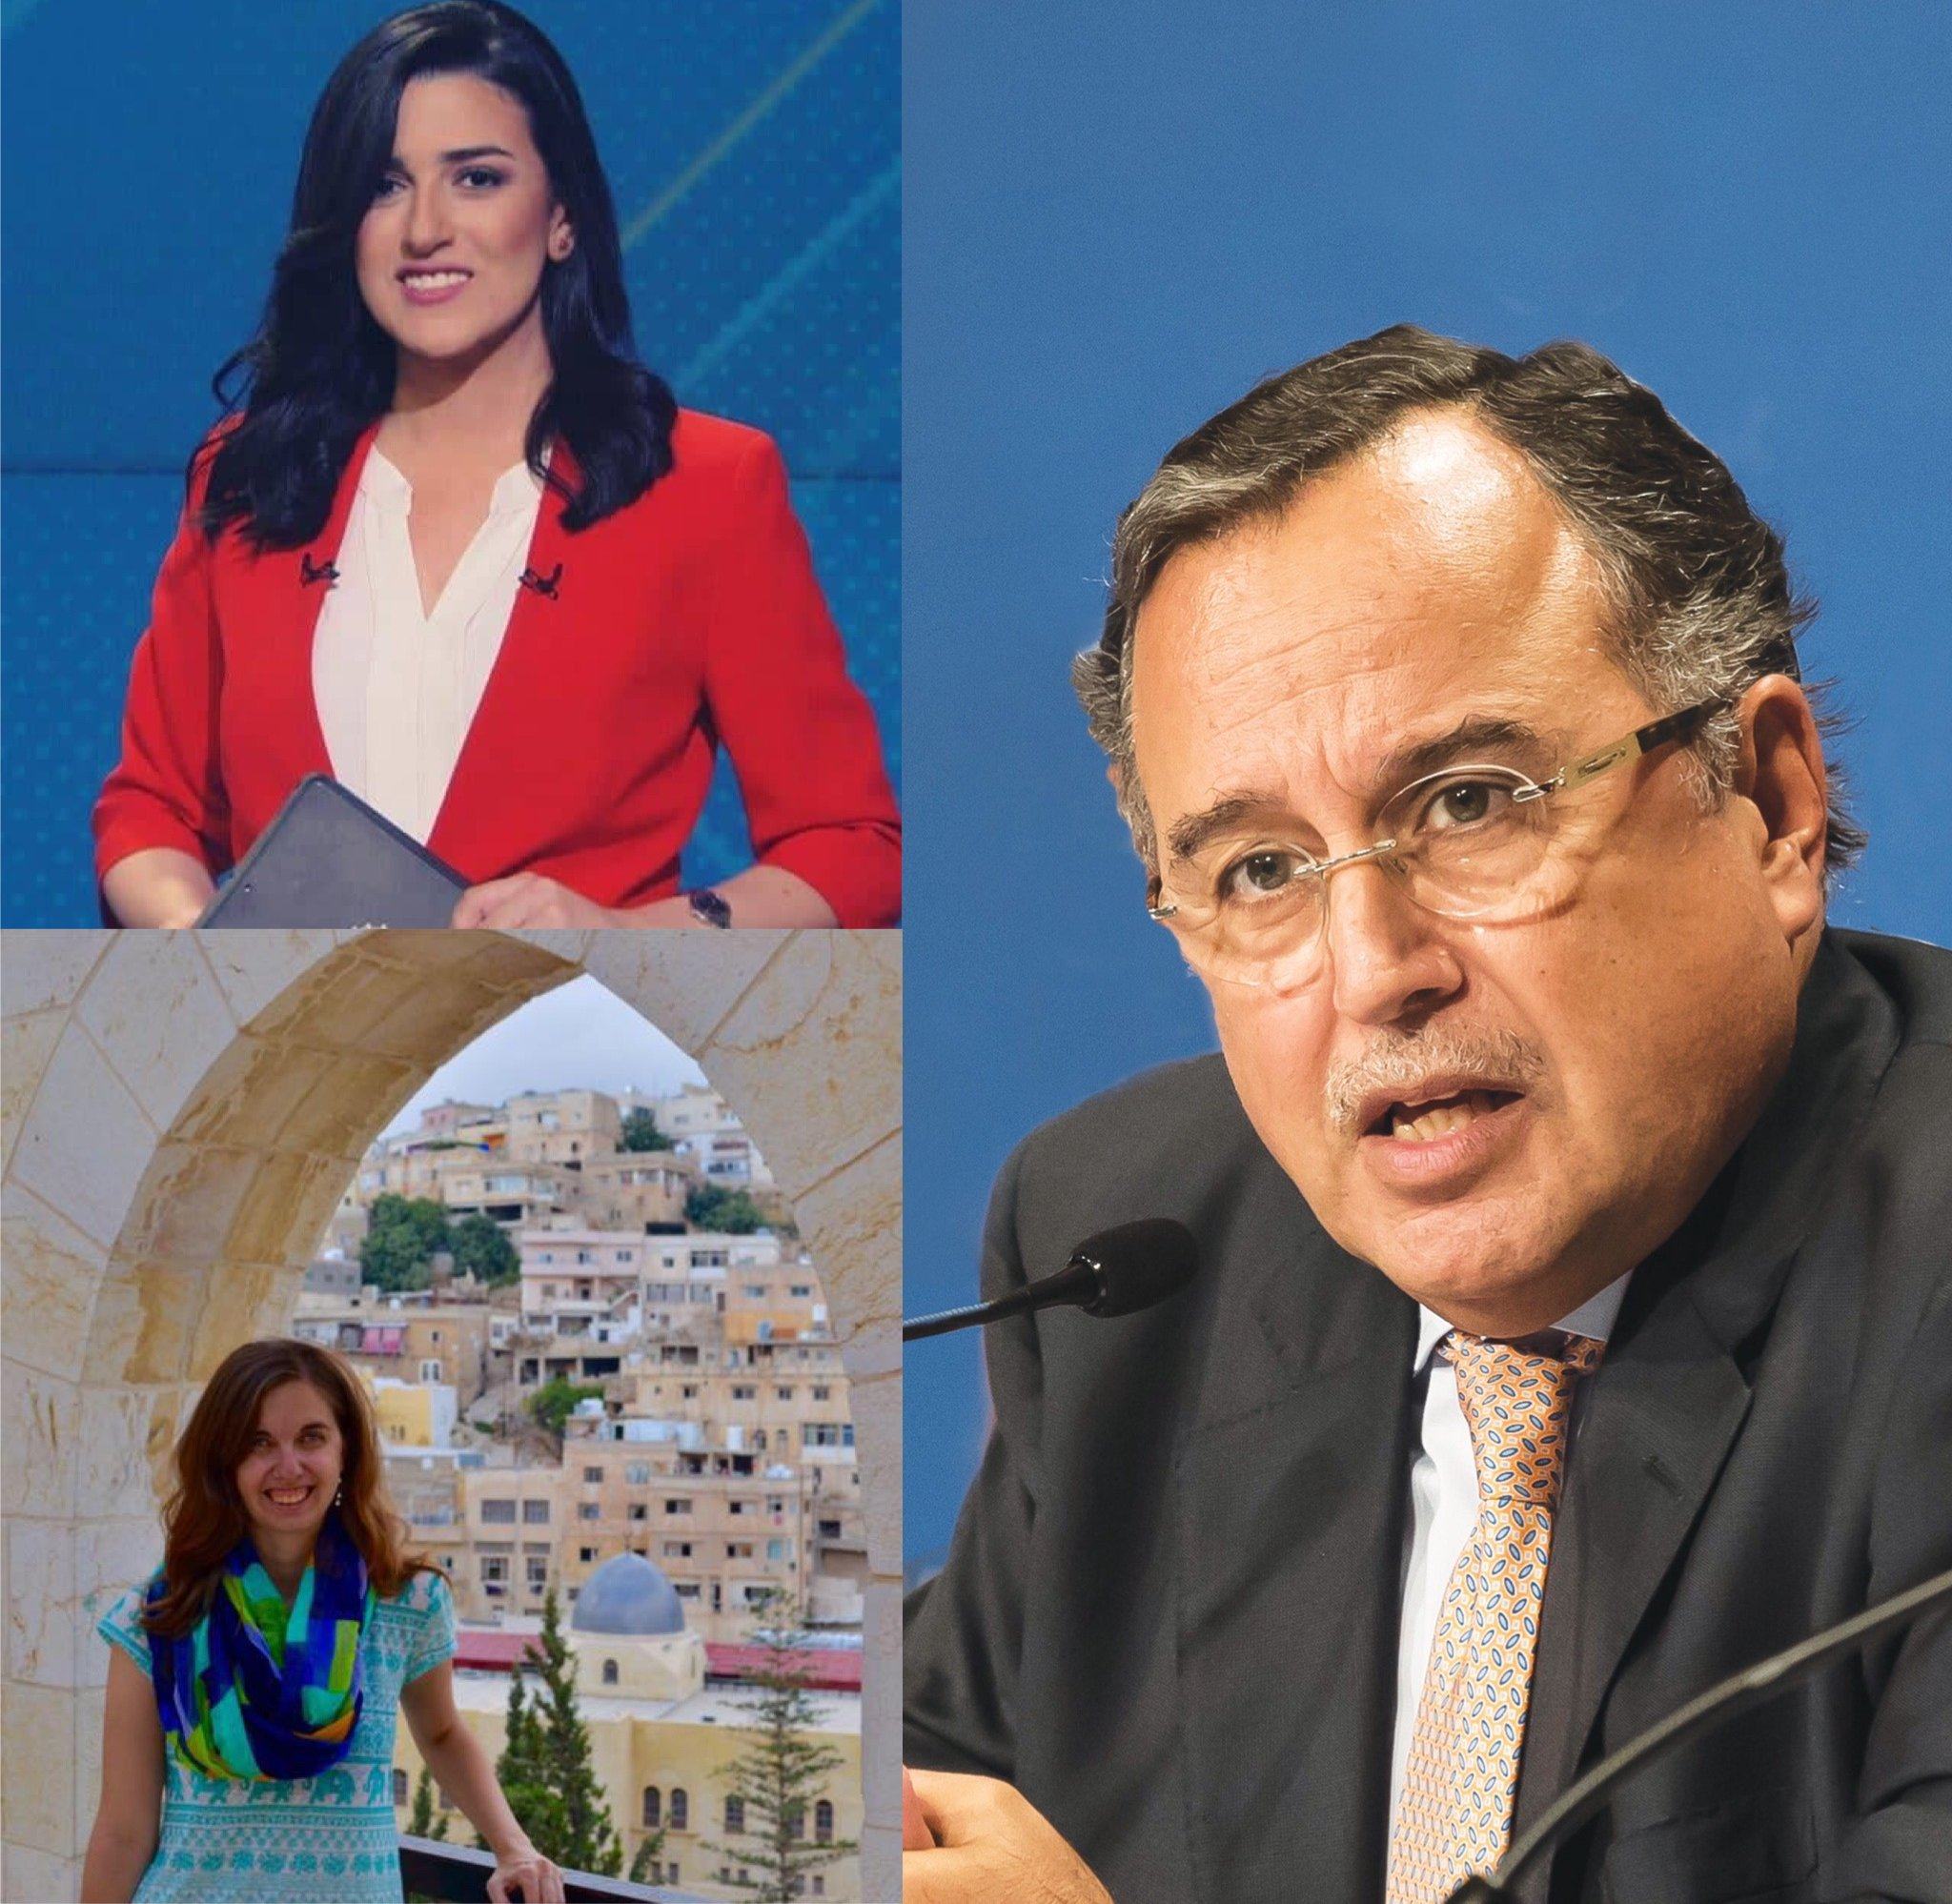 GAPP Alumni Online Event: Challenges and Opportunities for Global and Public Affairs in a Changing Environment, Sunday October 25, 2020 -7:30 - 8:30 pm, Cairo Time